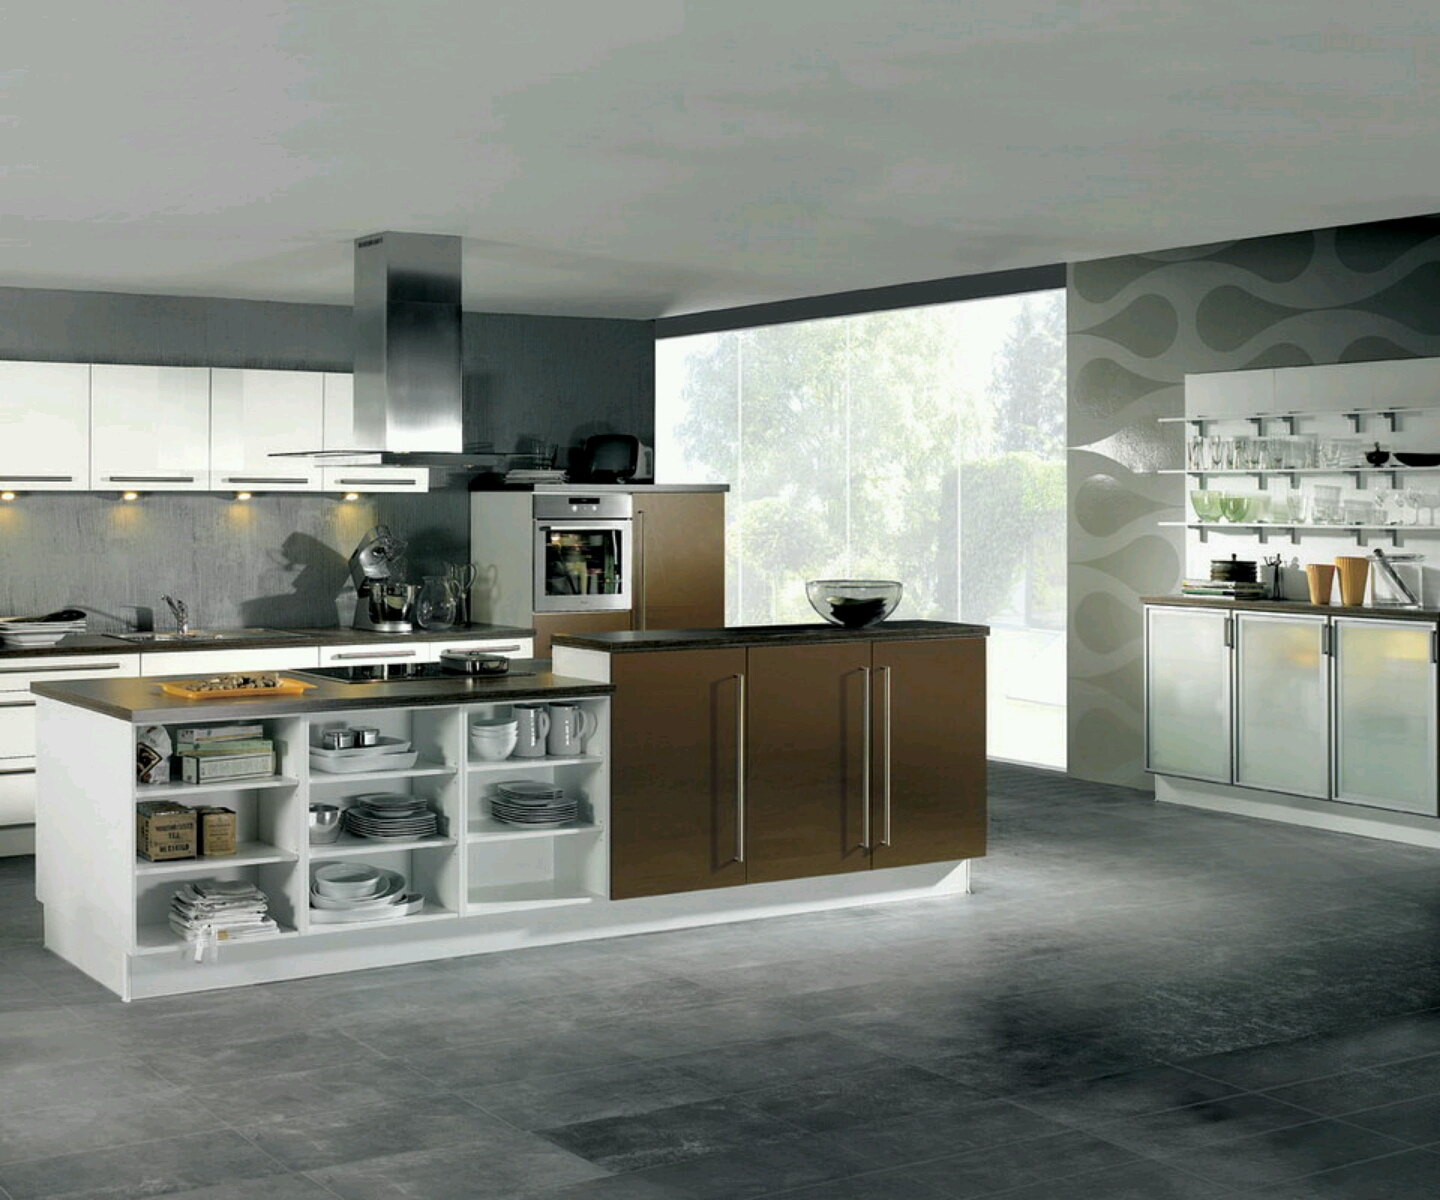 Ultra modern kitchen designs ideas modern home designs for Pics of modern kitchen designs